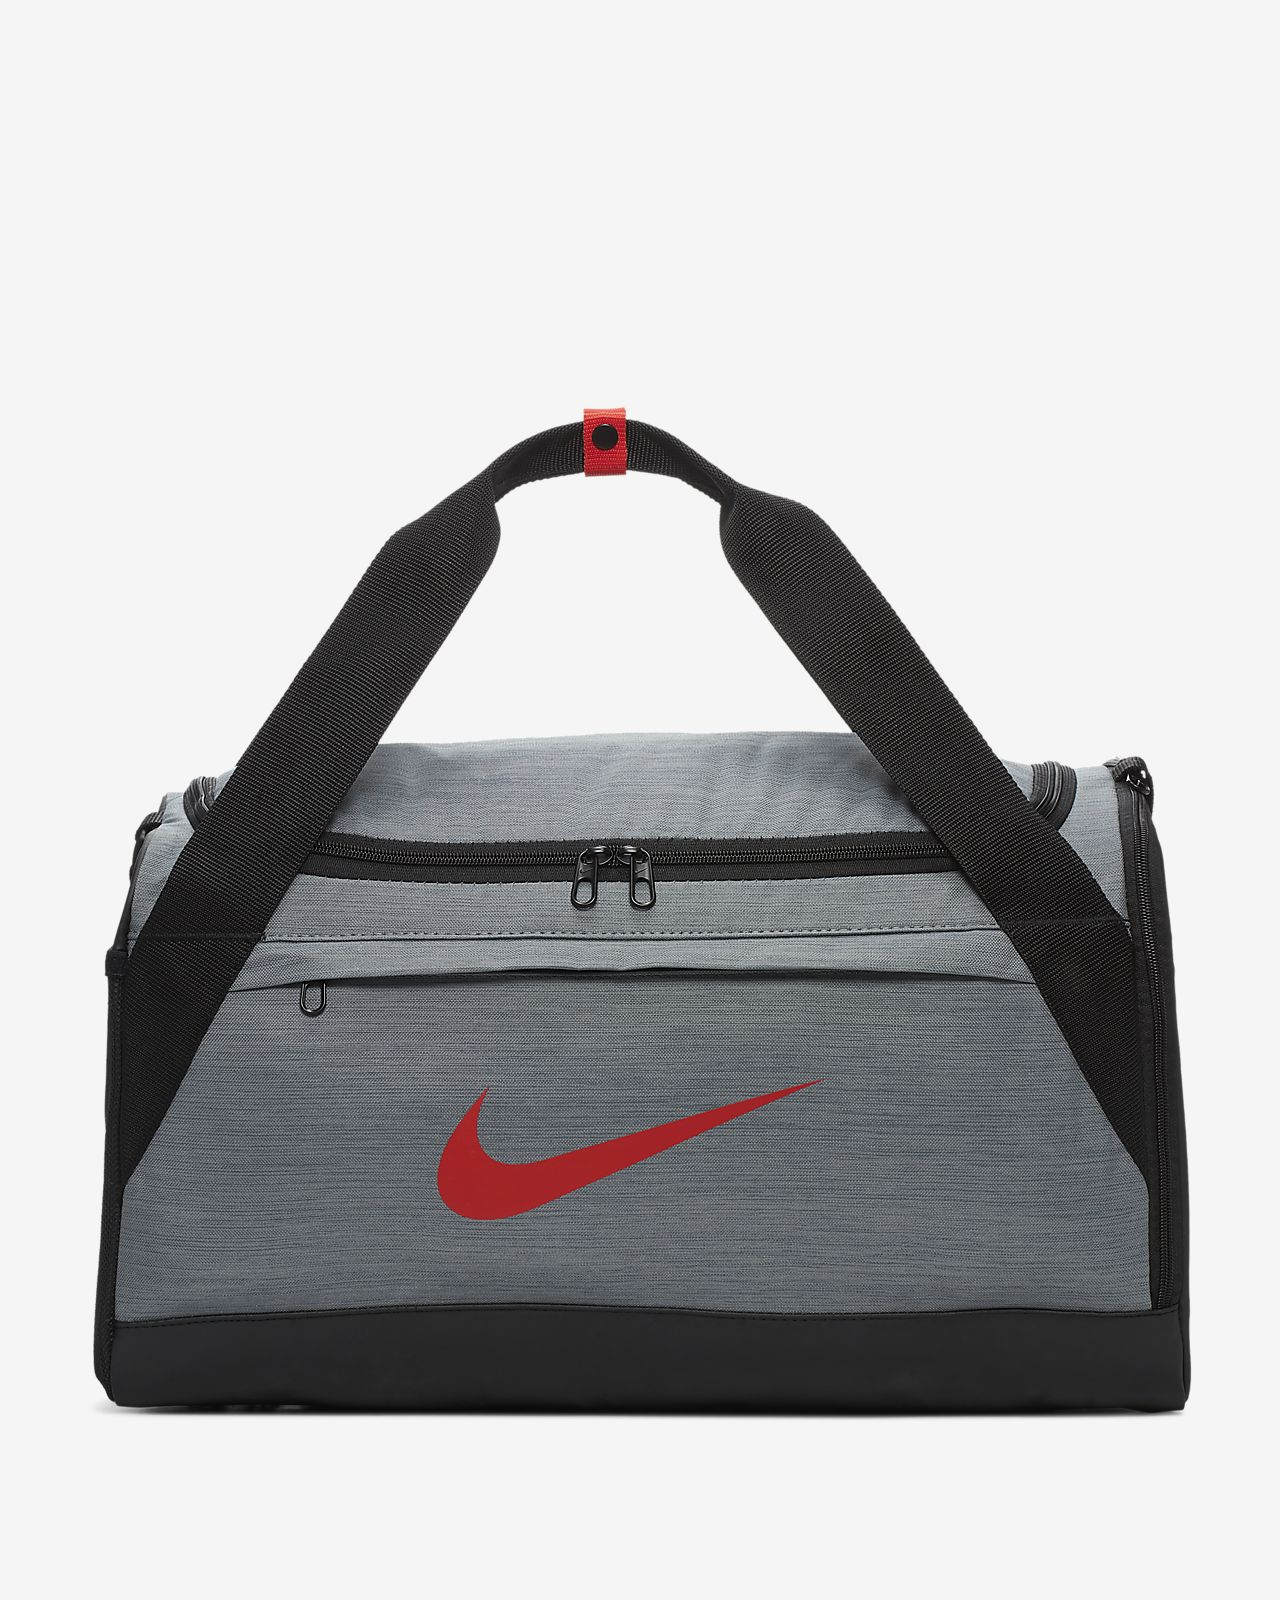 943527e89 Nike Brasilia Training Duffel Bag (Small). Nike.com